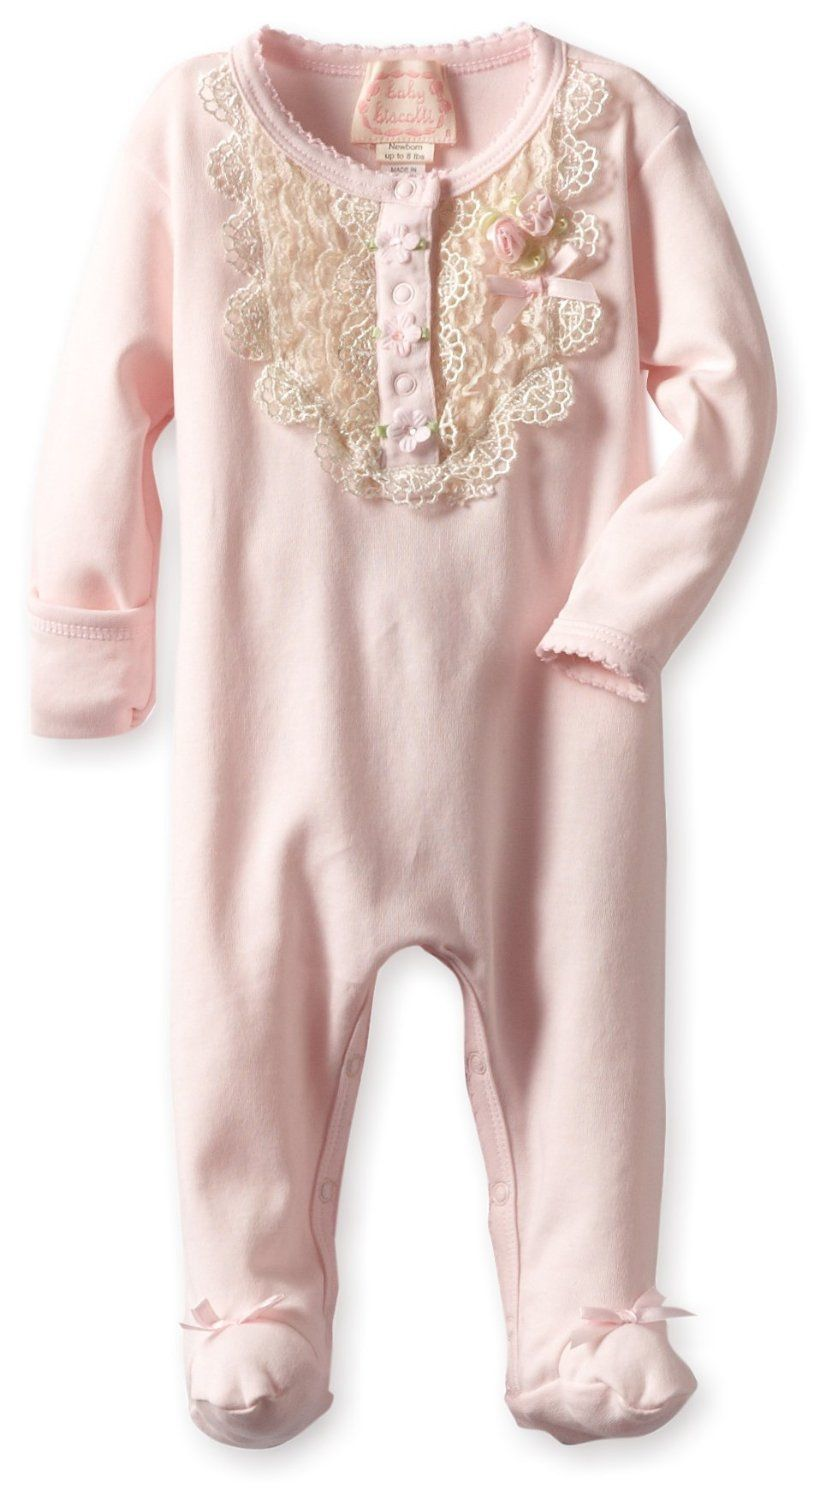 57e7840a2 Amazon.com  Biscotti Baby-Girls Newborn Lace Lullaby Long Sleeve ...